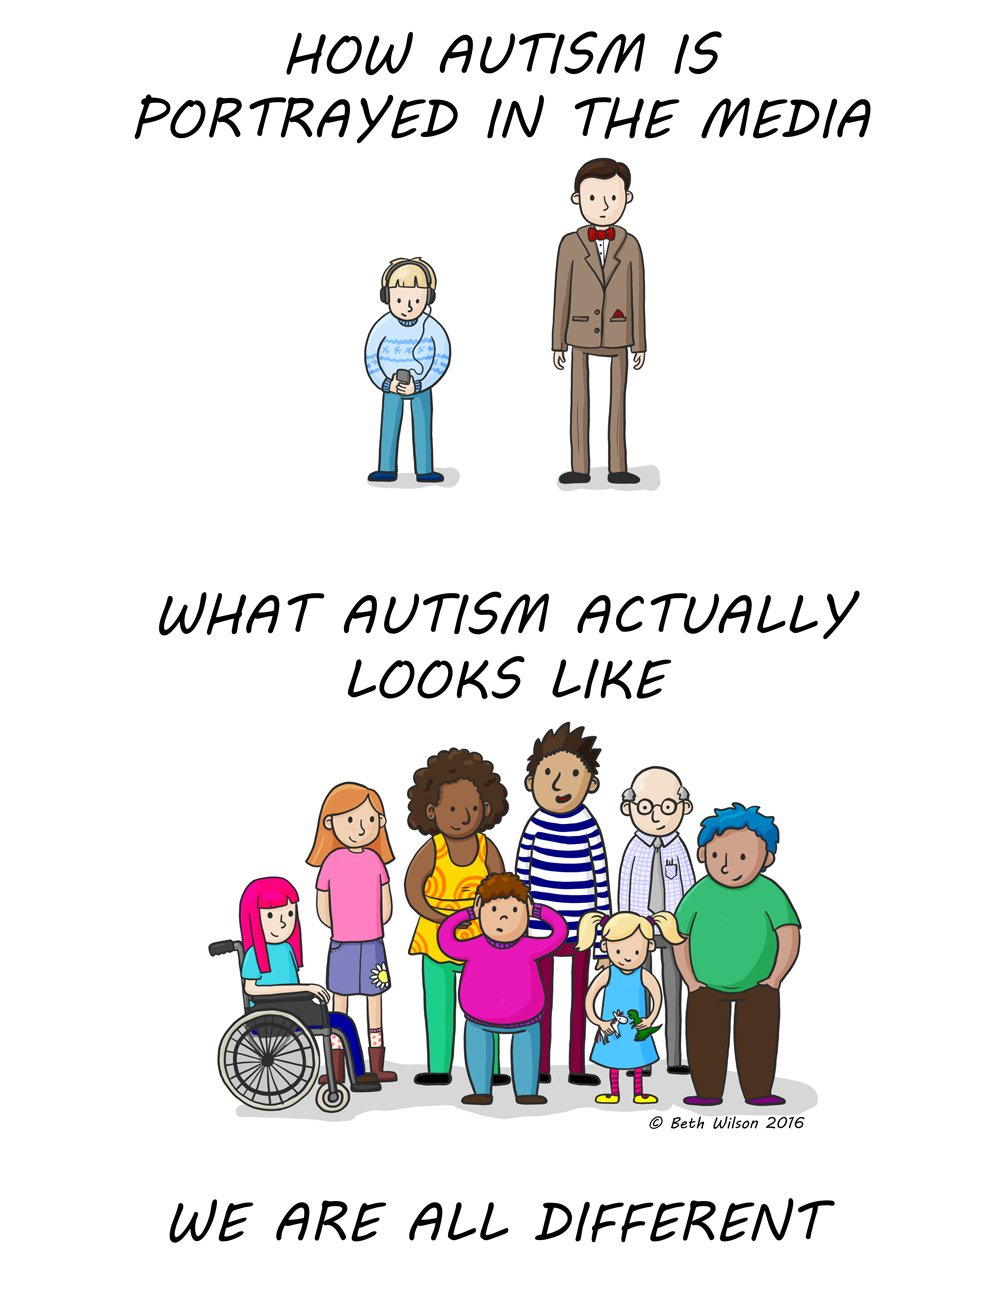 Got annoyed so I drew a thing #autism #aspergers @Autism https://t.co/06rWj3jnKa